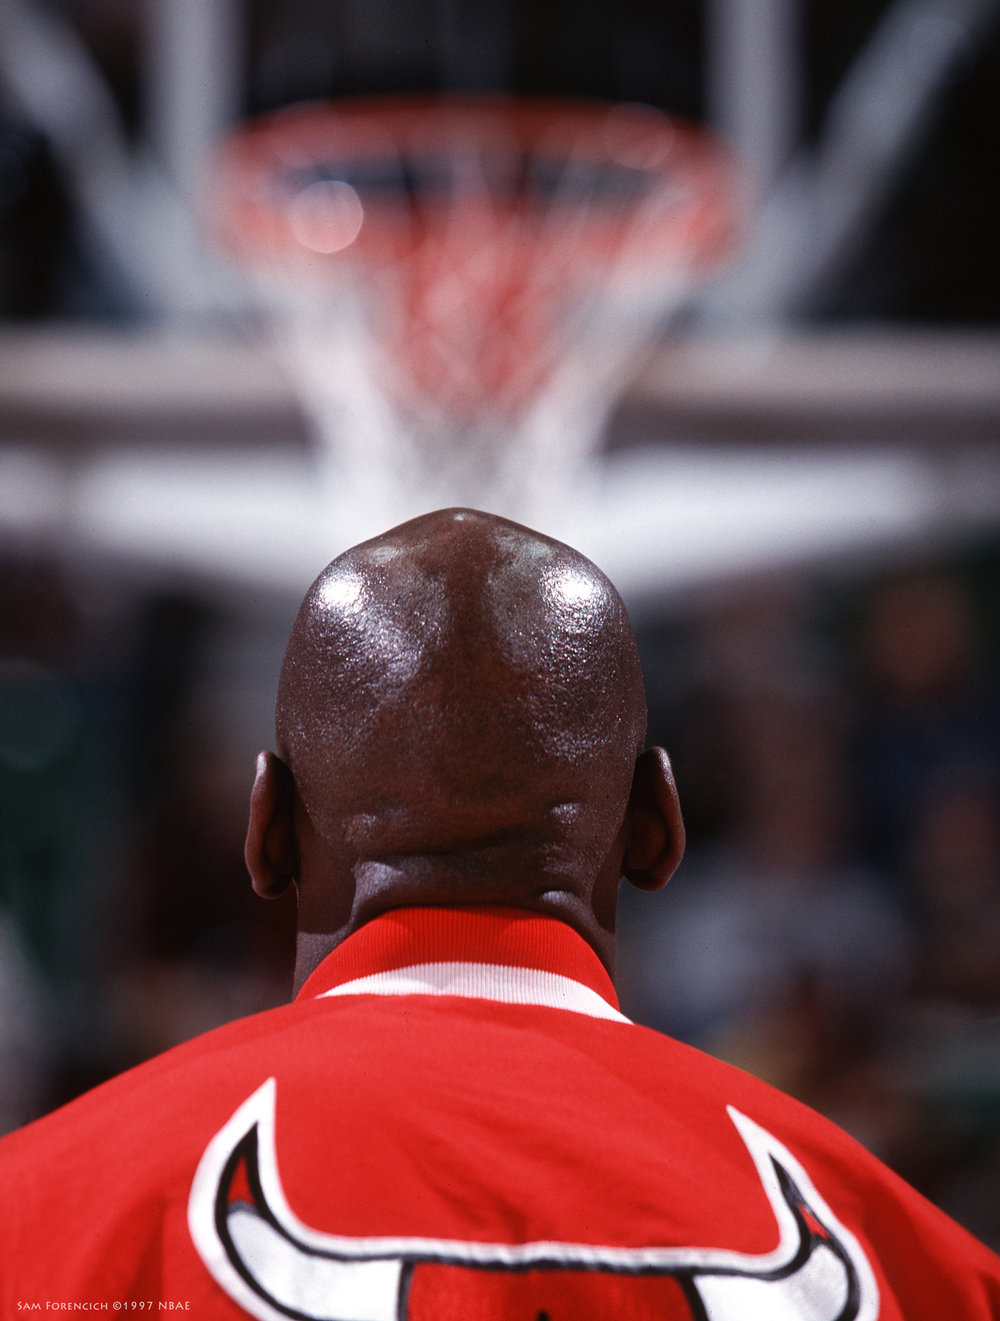 San Jose, CA - Michael Jordan of the Chicago Bulls eyes the basket during warm ups at the San Jose Arena circa 1997. 35 mm RDP 100 film, arena strobe lighting.  Sam Forencich ©1997 NBAE